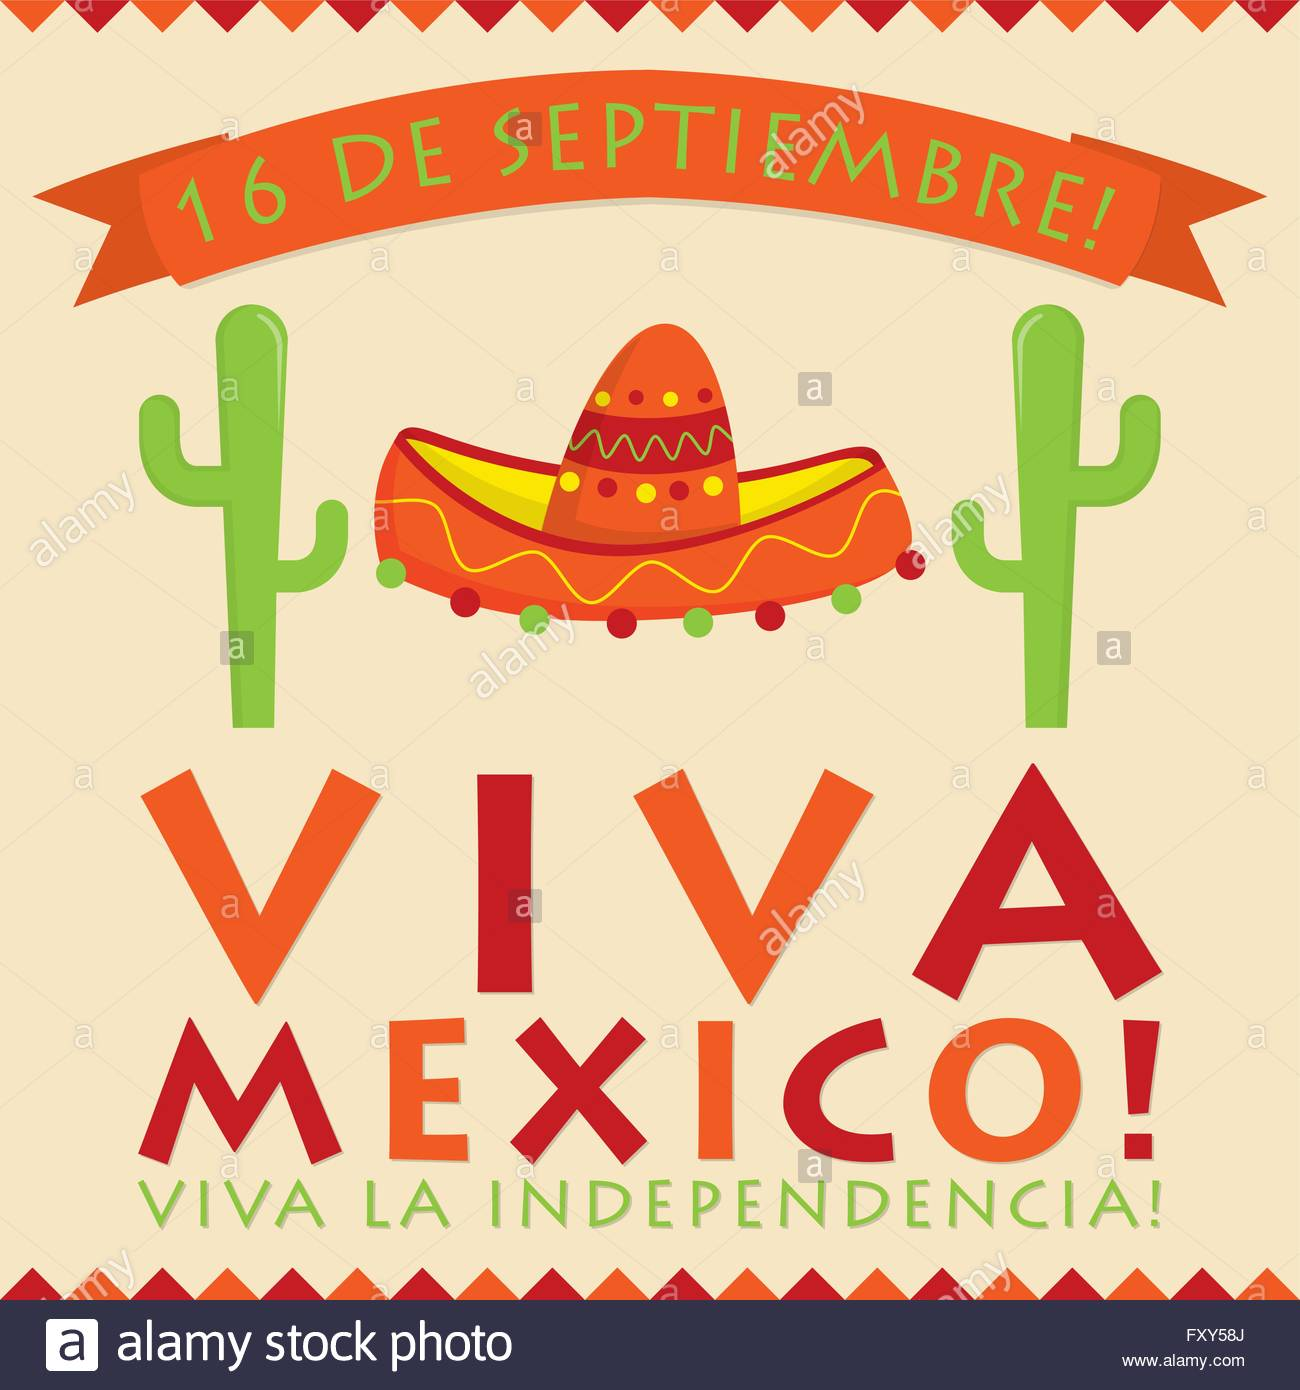 Mexican independence day clipart 5 » Clipart Station.